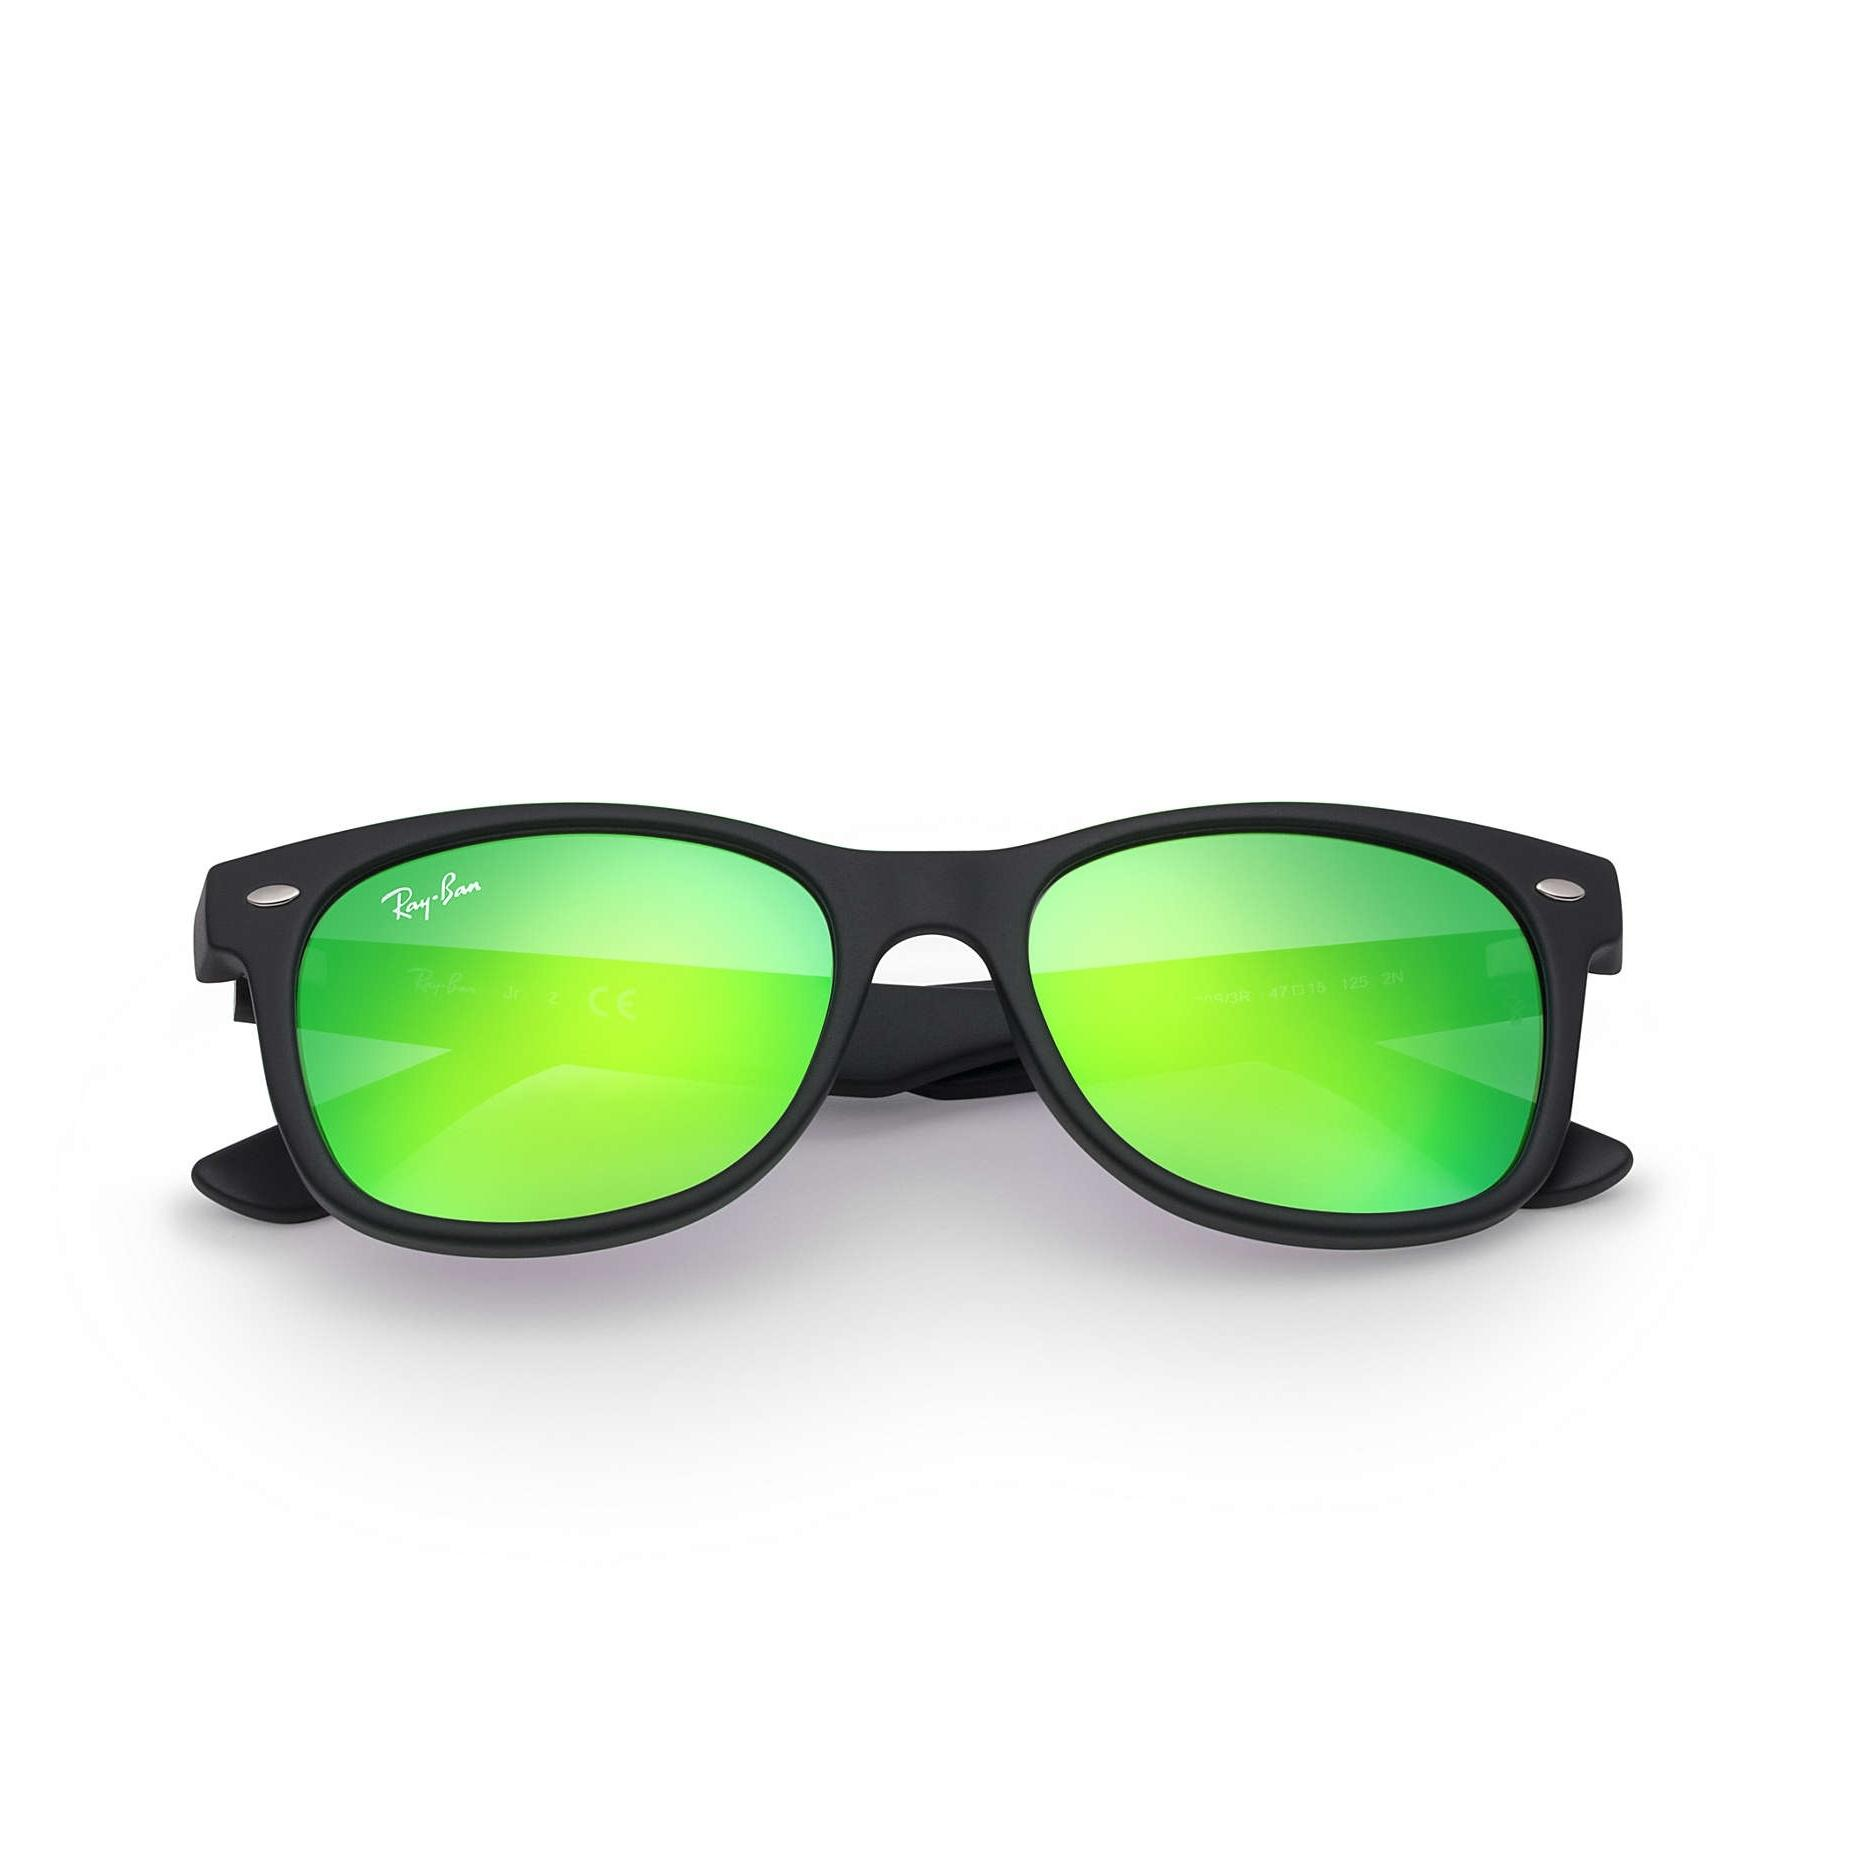 new wayfarer sunglasses 1qul  Junior New Wayfarer Sunglasses, Matte Black/Green Flash,